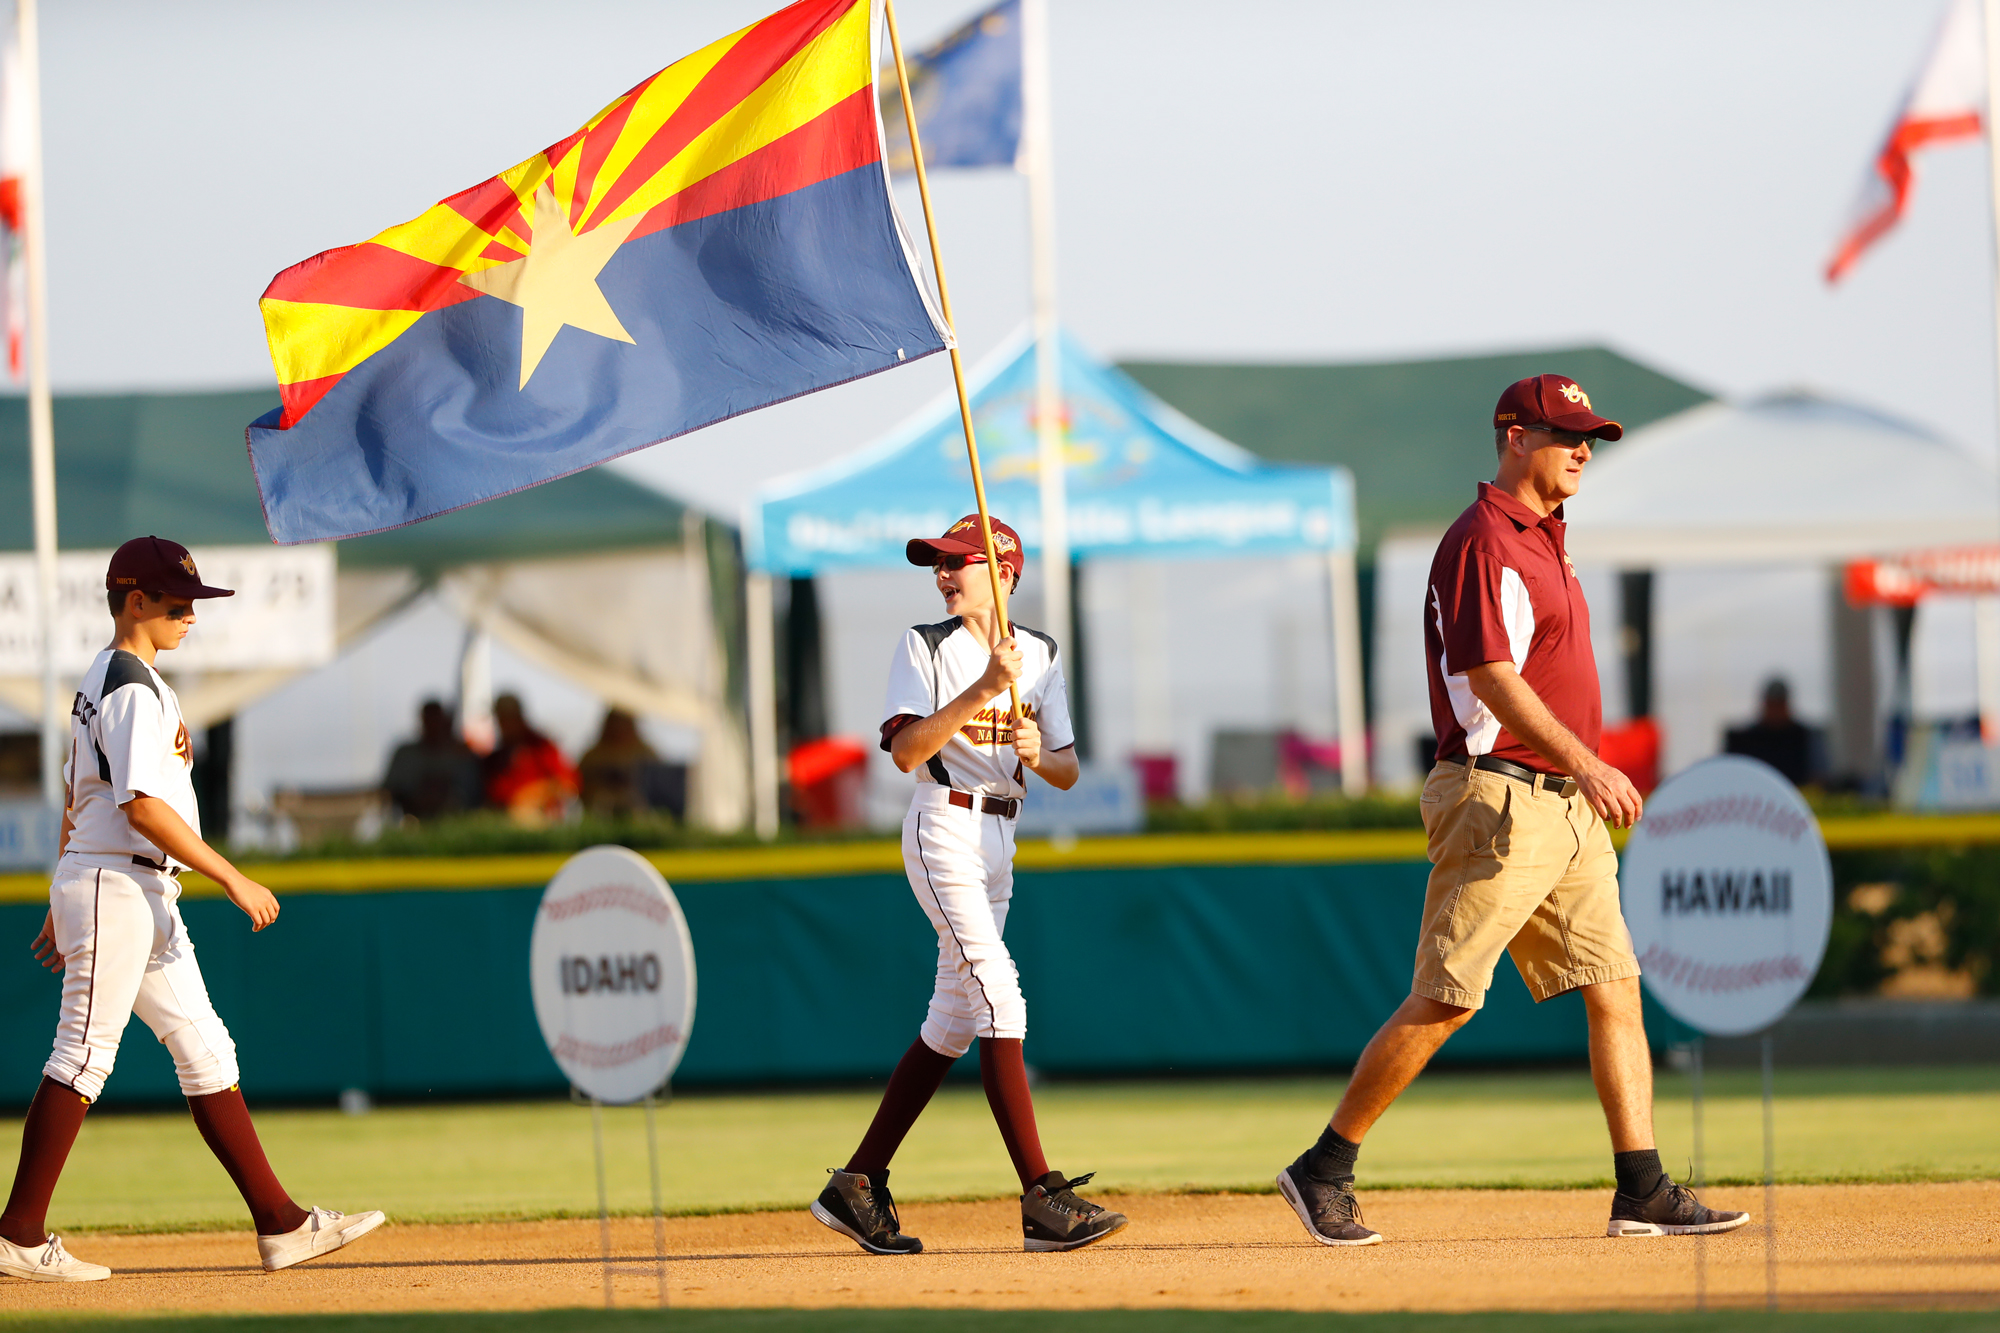 west-region-opening-ceremonies-players-holding-flag